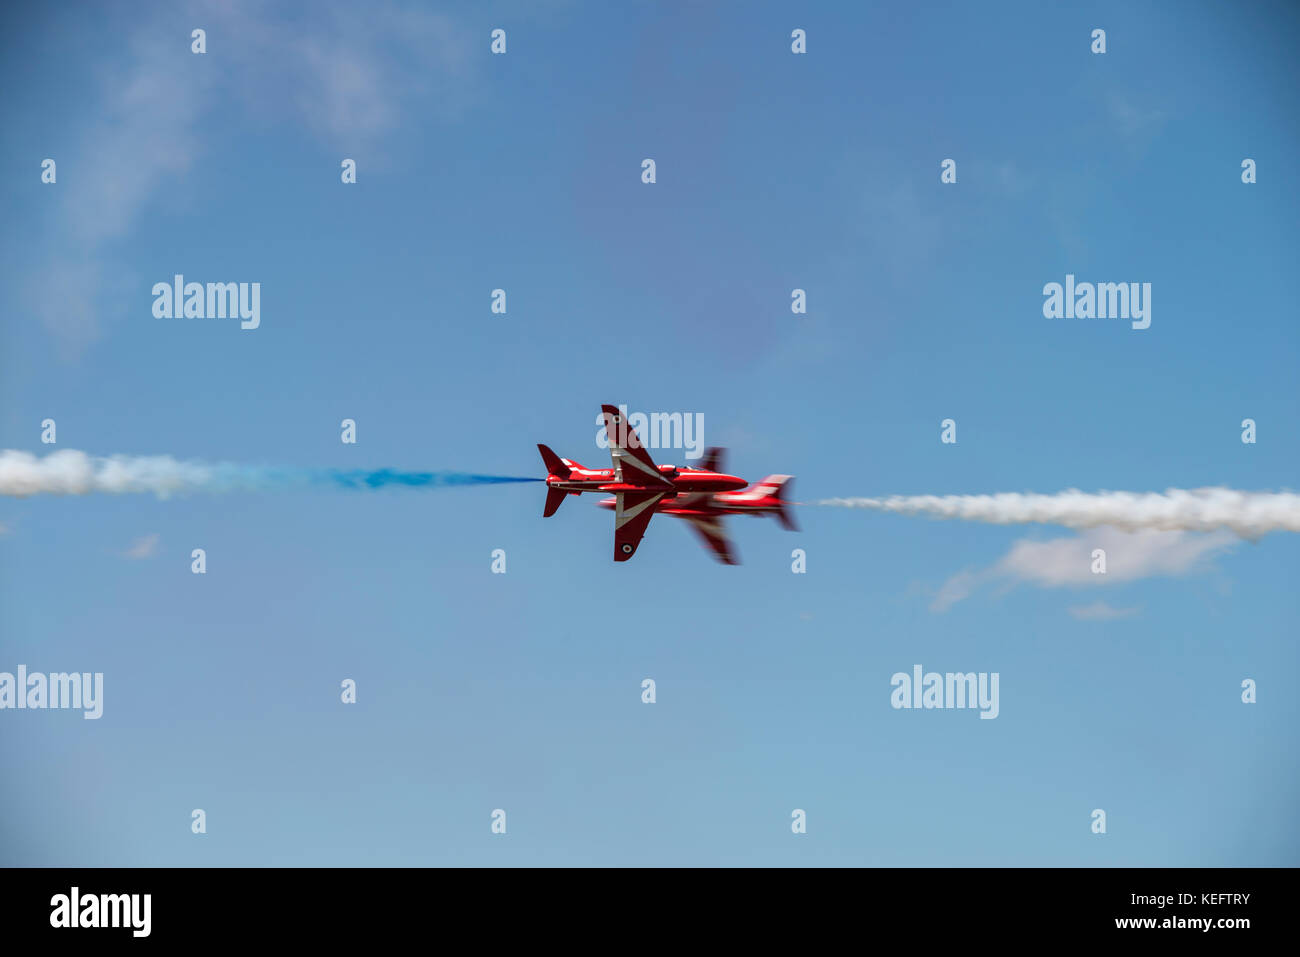 Red Arrows aerobatic opposition crossover - Stock Image